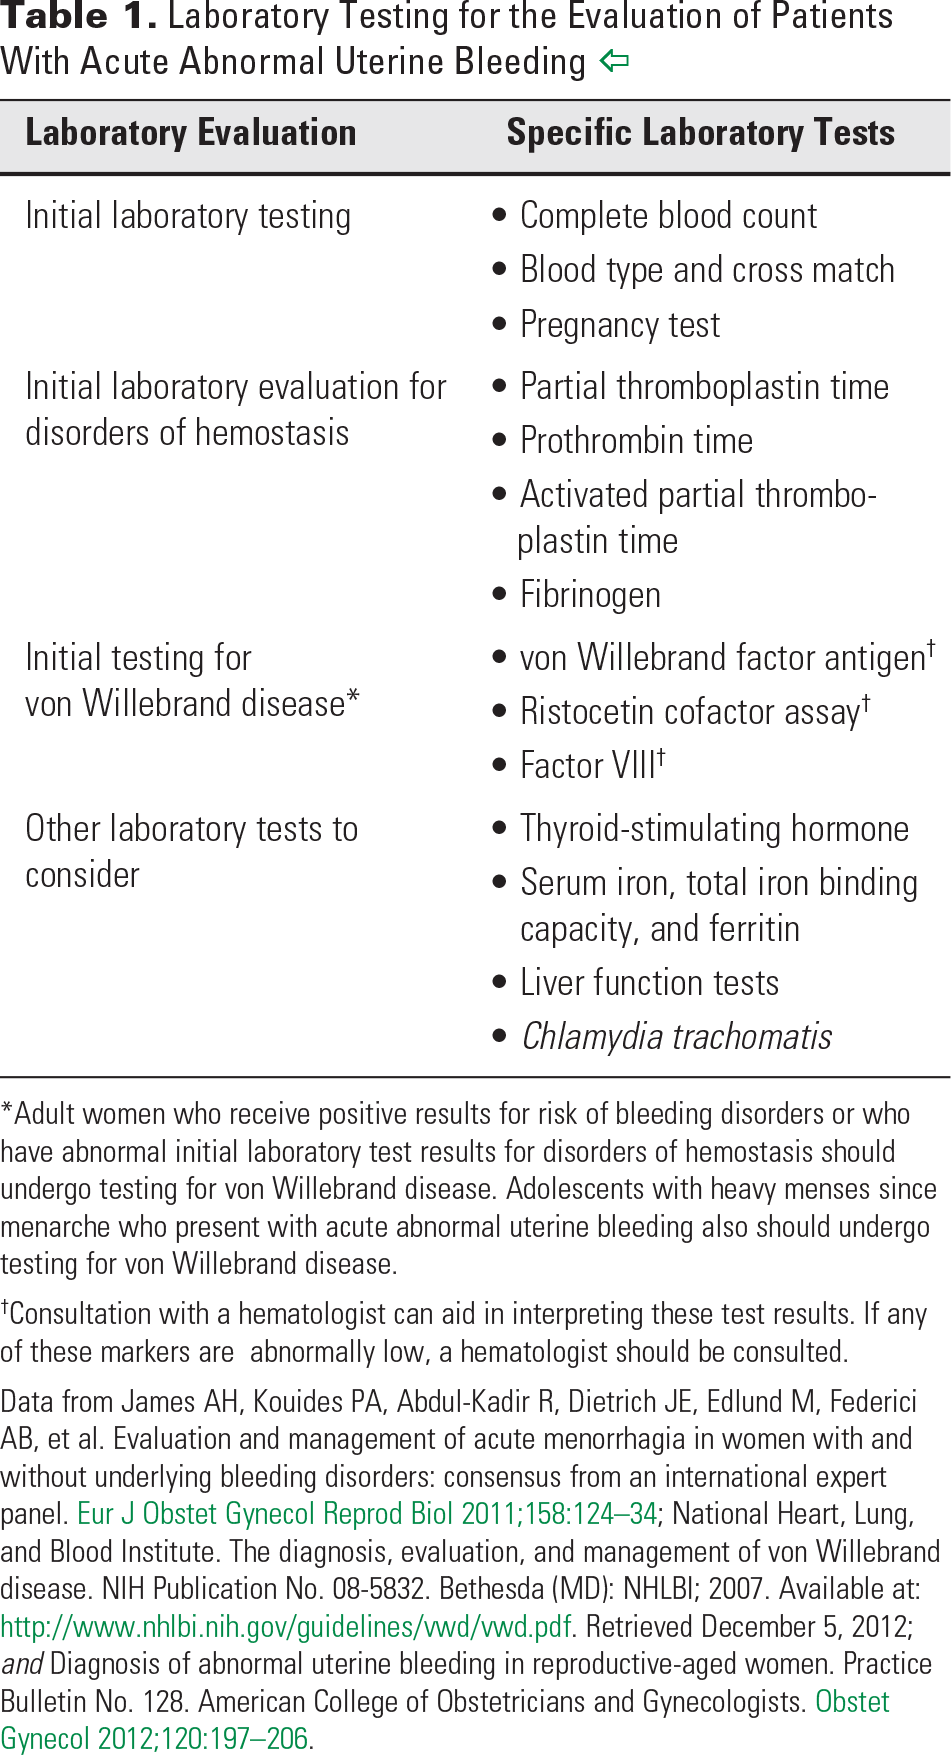 Table 1. Laboratory Testing for the Evaluation of Patients With Acute Abnormal Uterine Bleeding